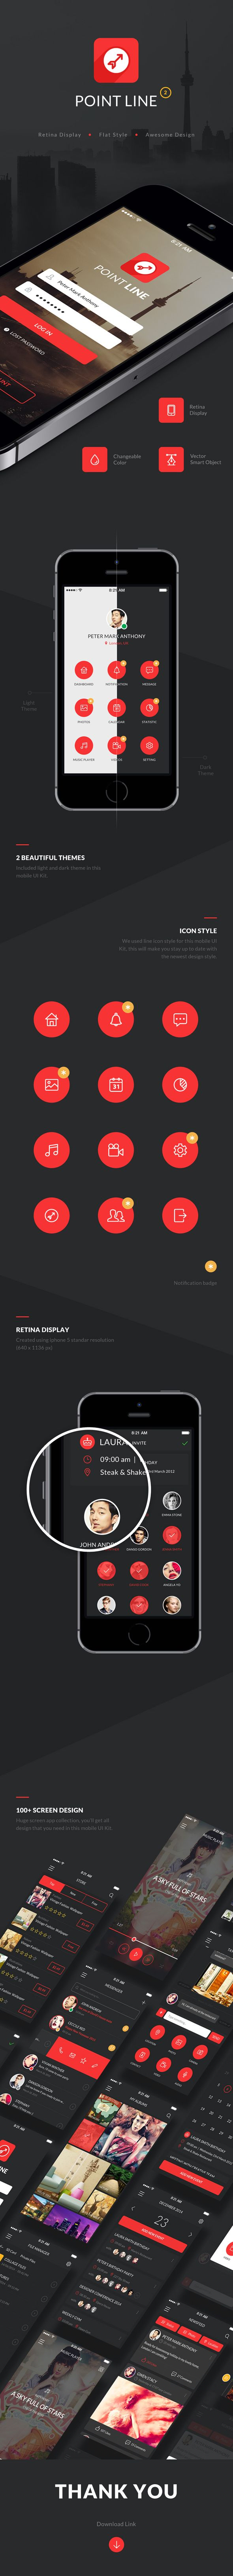 Graphic Design Inspiration - Web Design Inspiration - Press Kit - Media Kit - iphone - screenshots - app - Point Mobile UI Kit